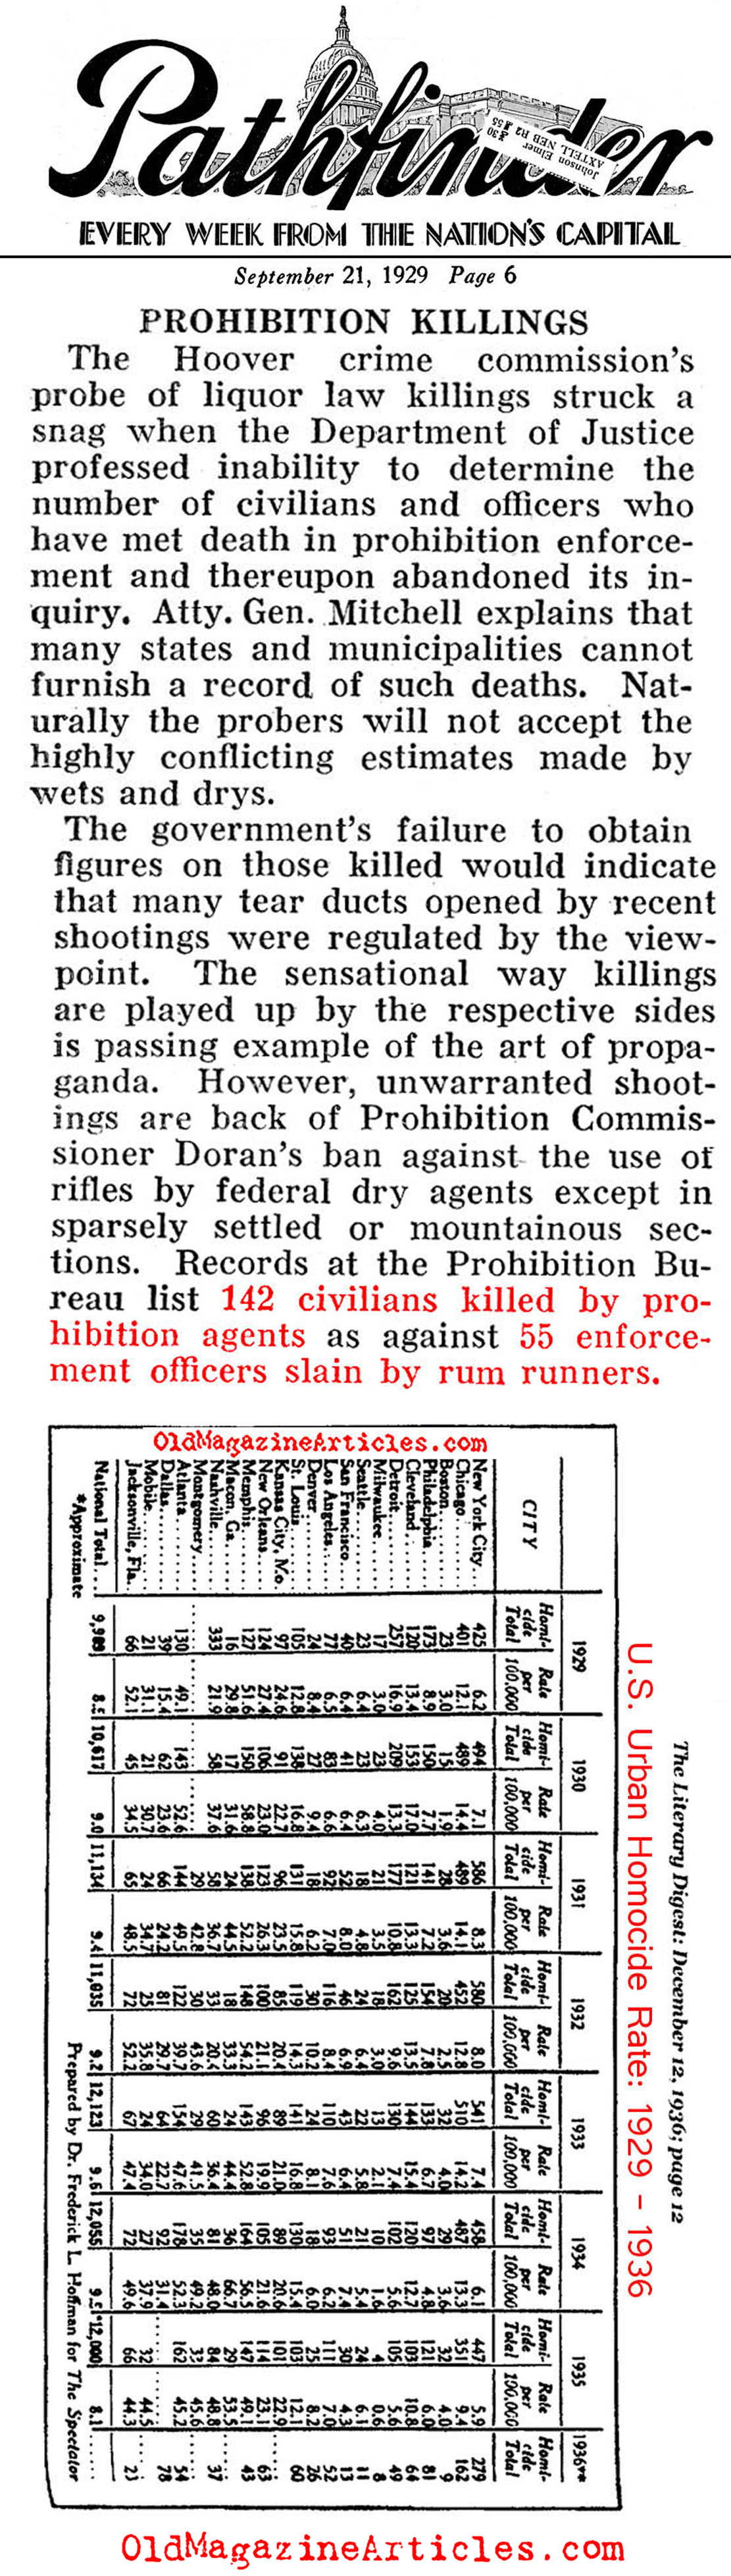 Prohibition Killings (Pathfinder Magazine, 1929)